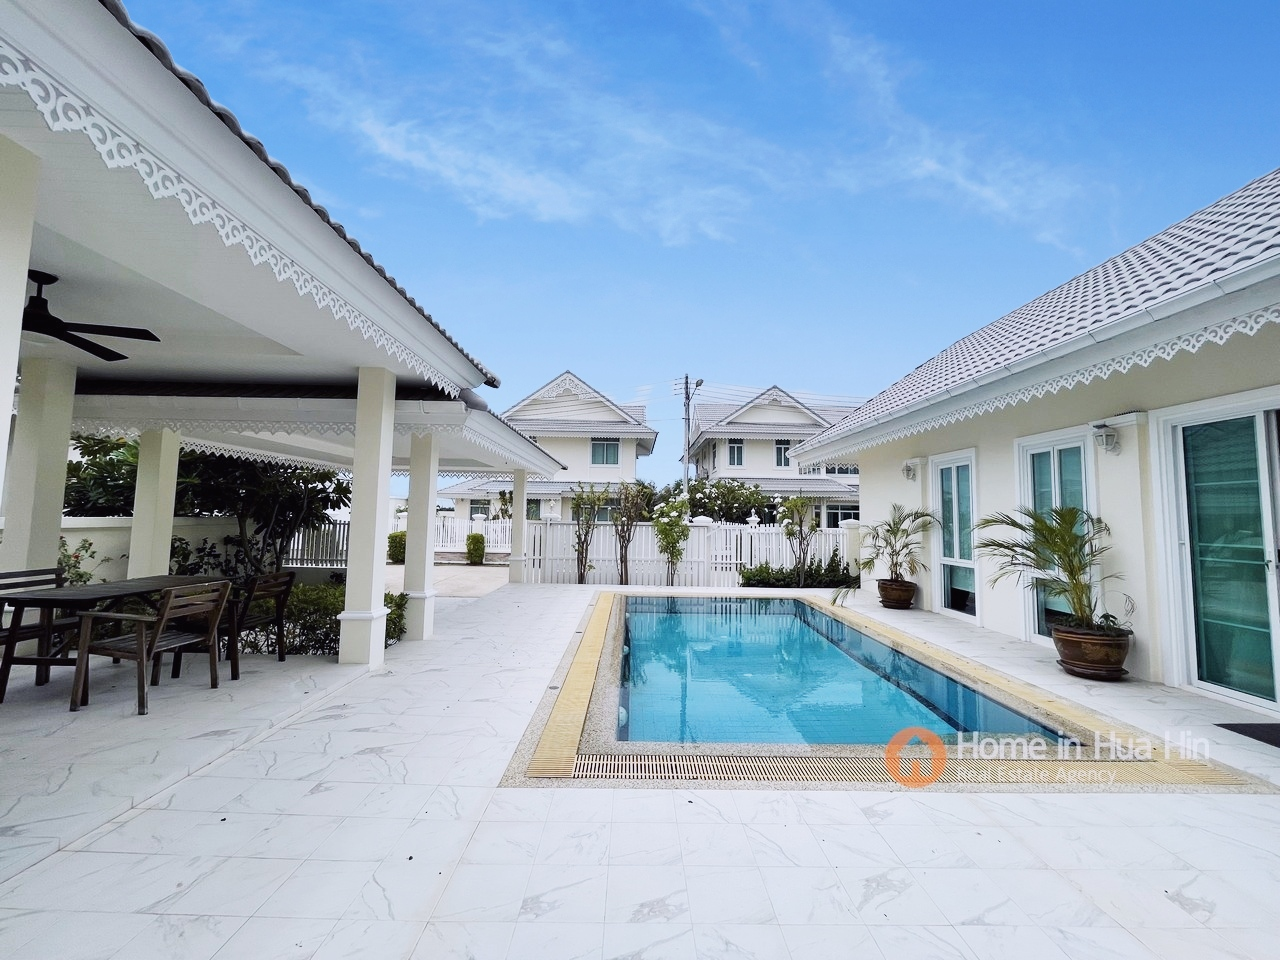 3 Bedroom Pool Villa, Nice Breeze by the Sea Cha Am for Sale